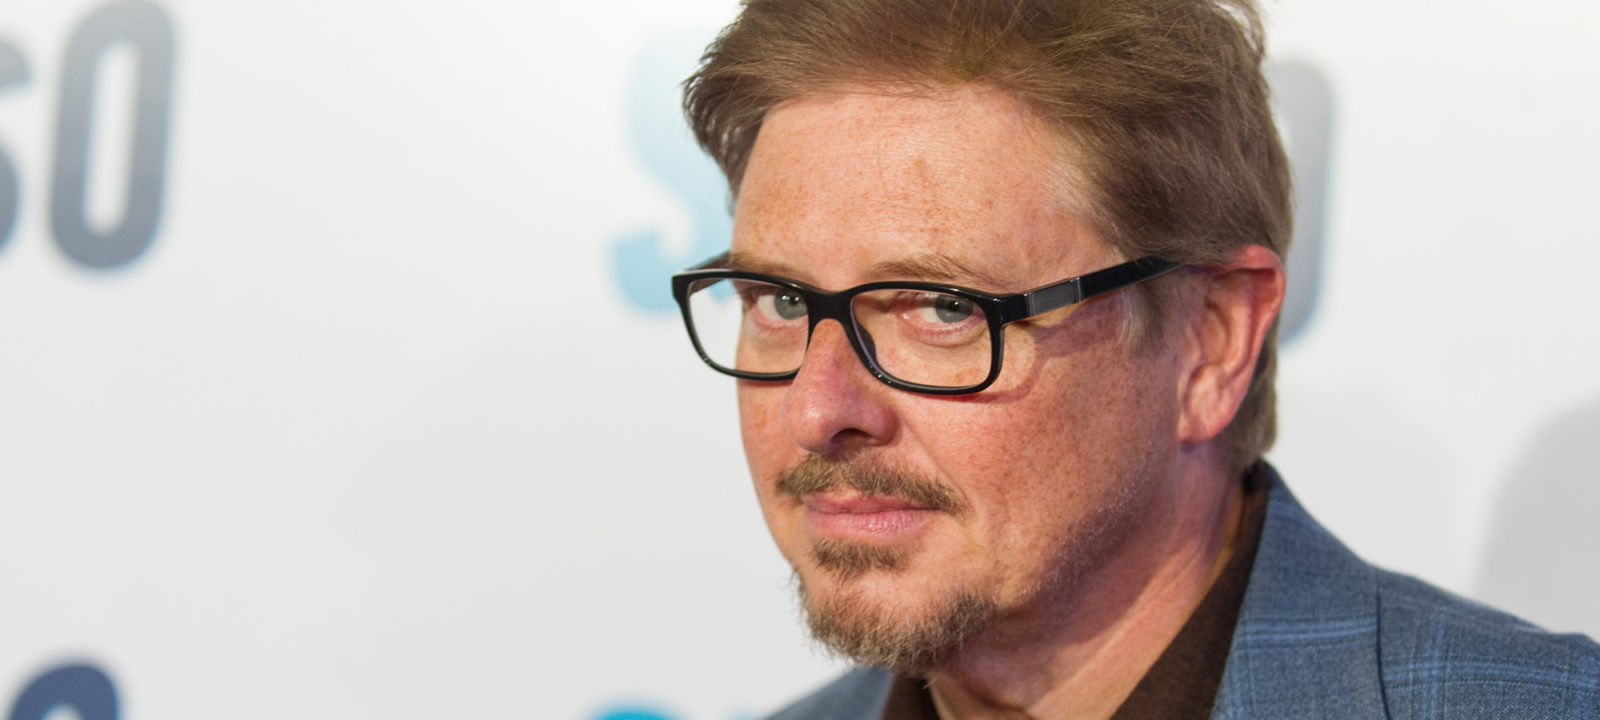 Dave Foley Dave Foley new photo